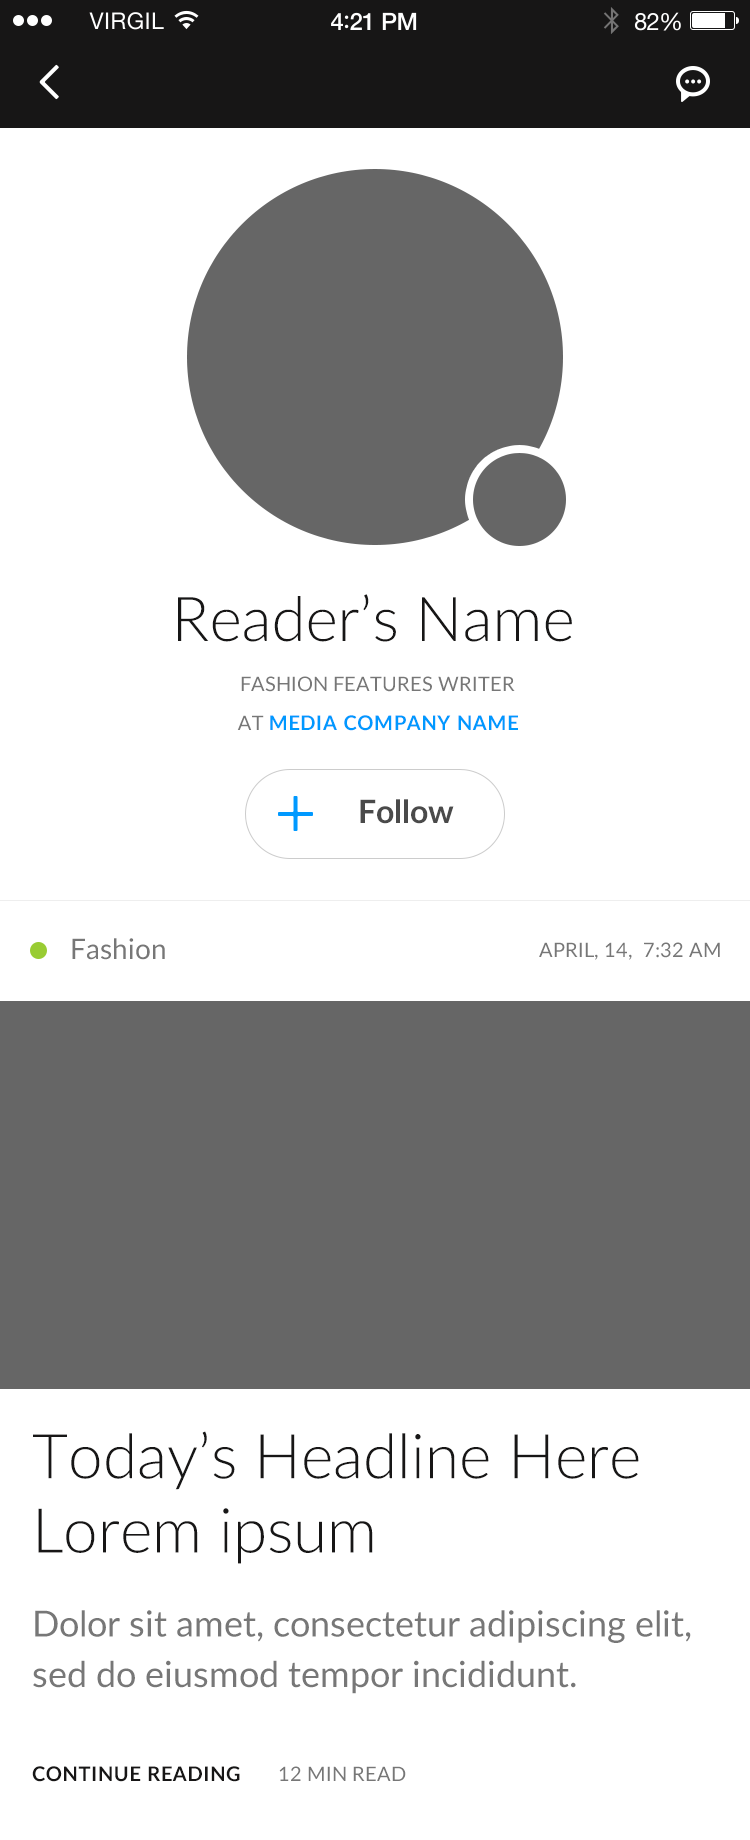 Profile (Reader)